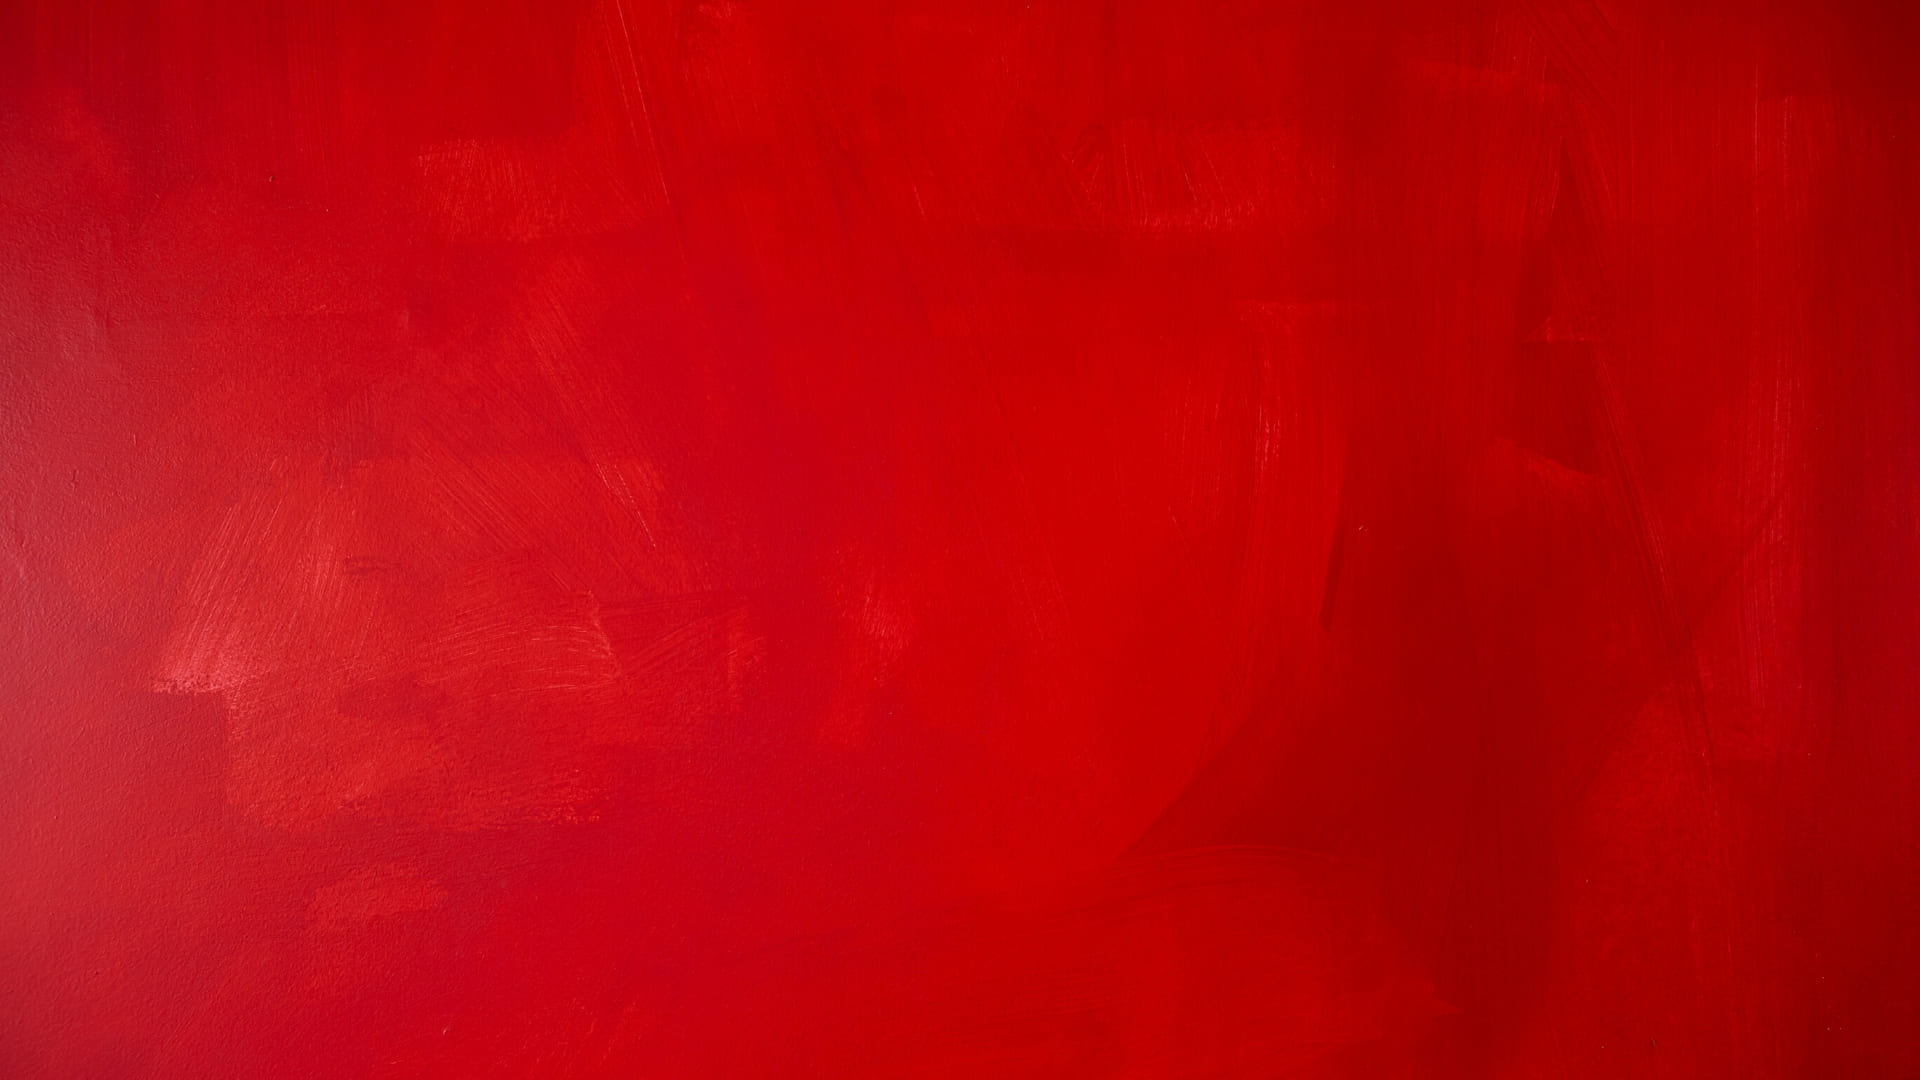 Red background patterns